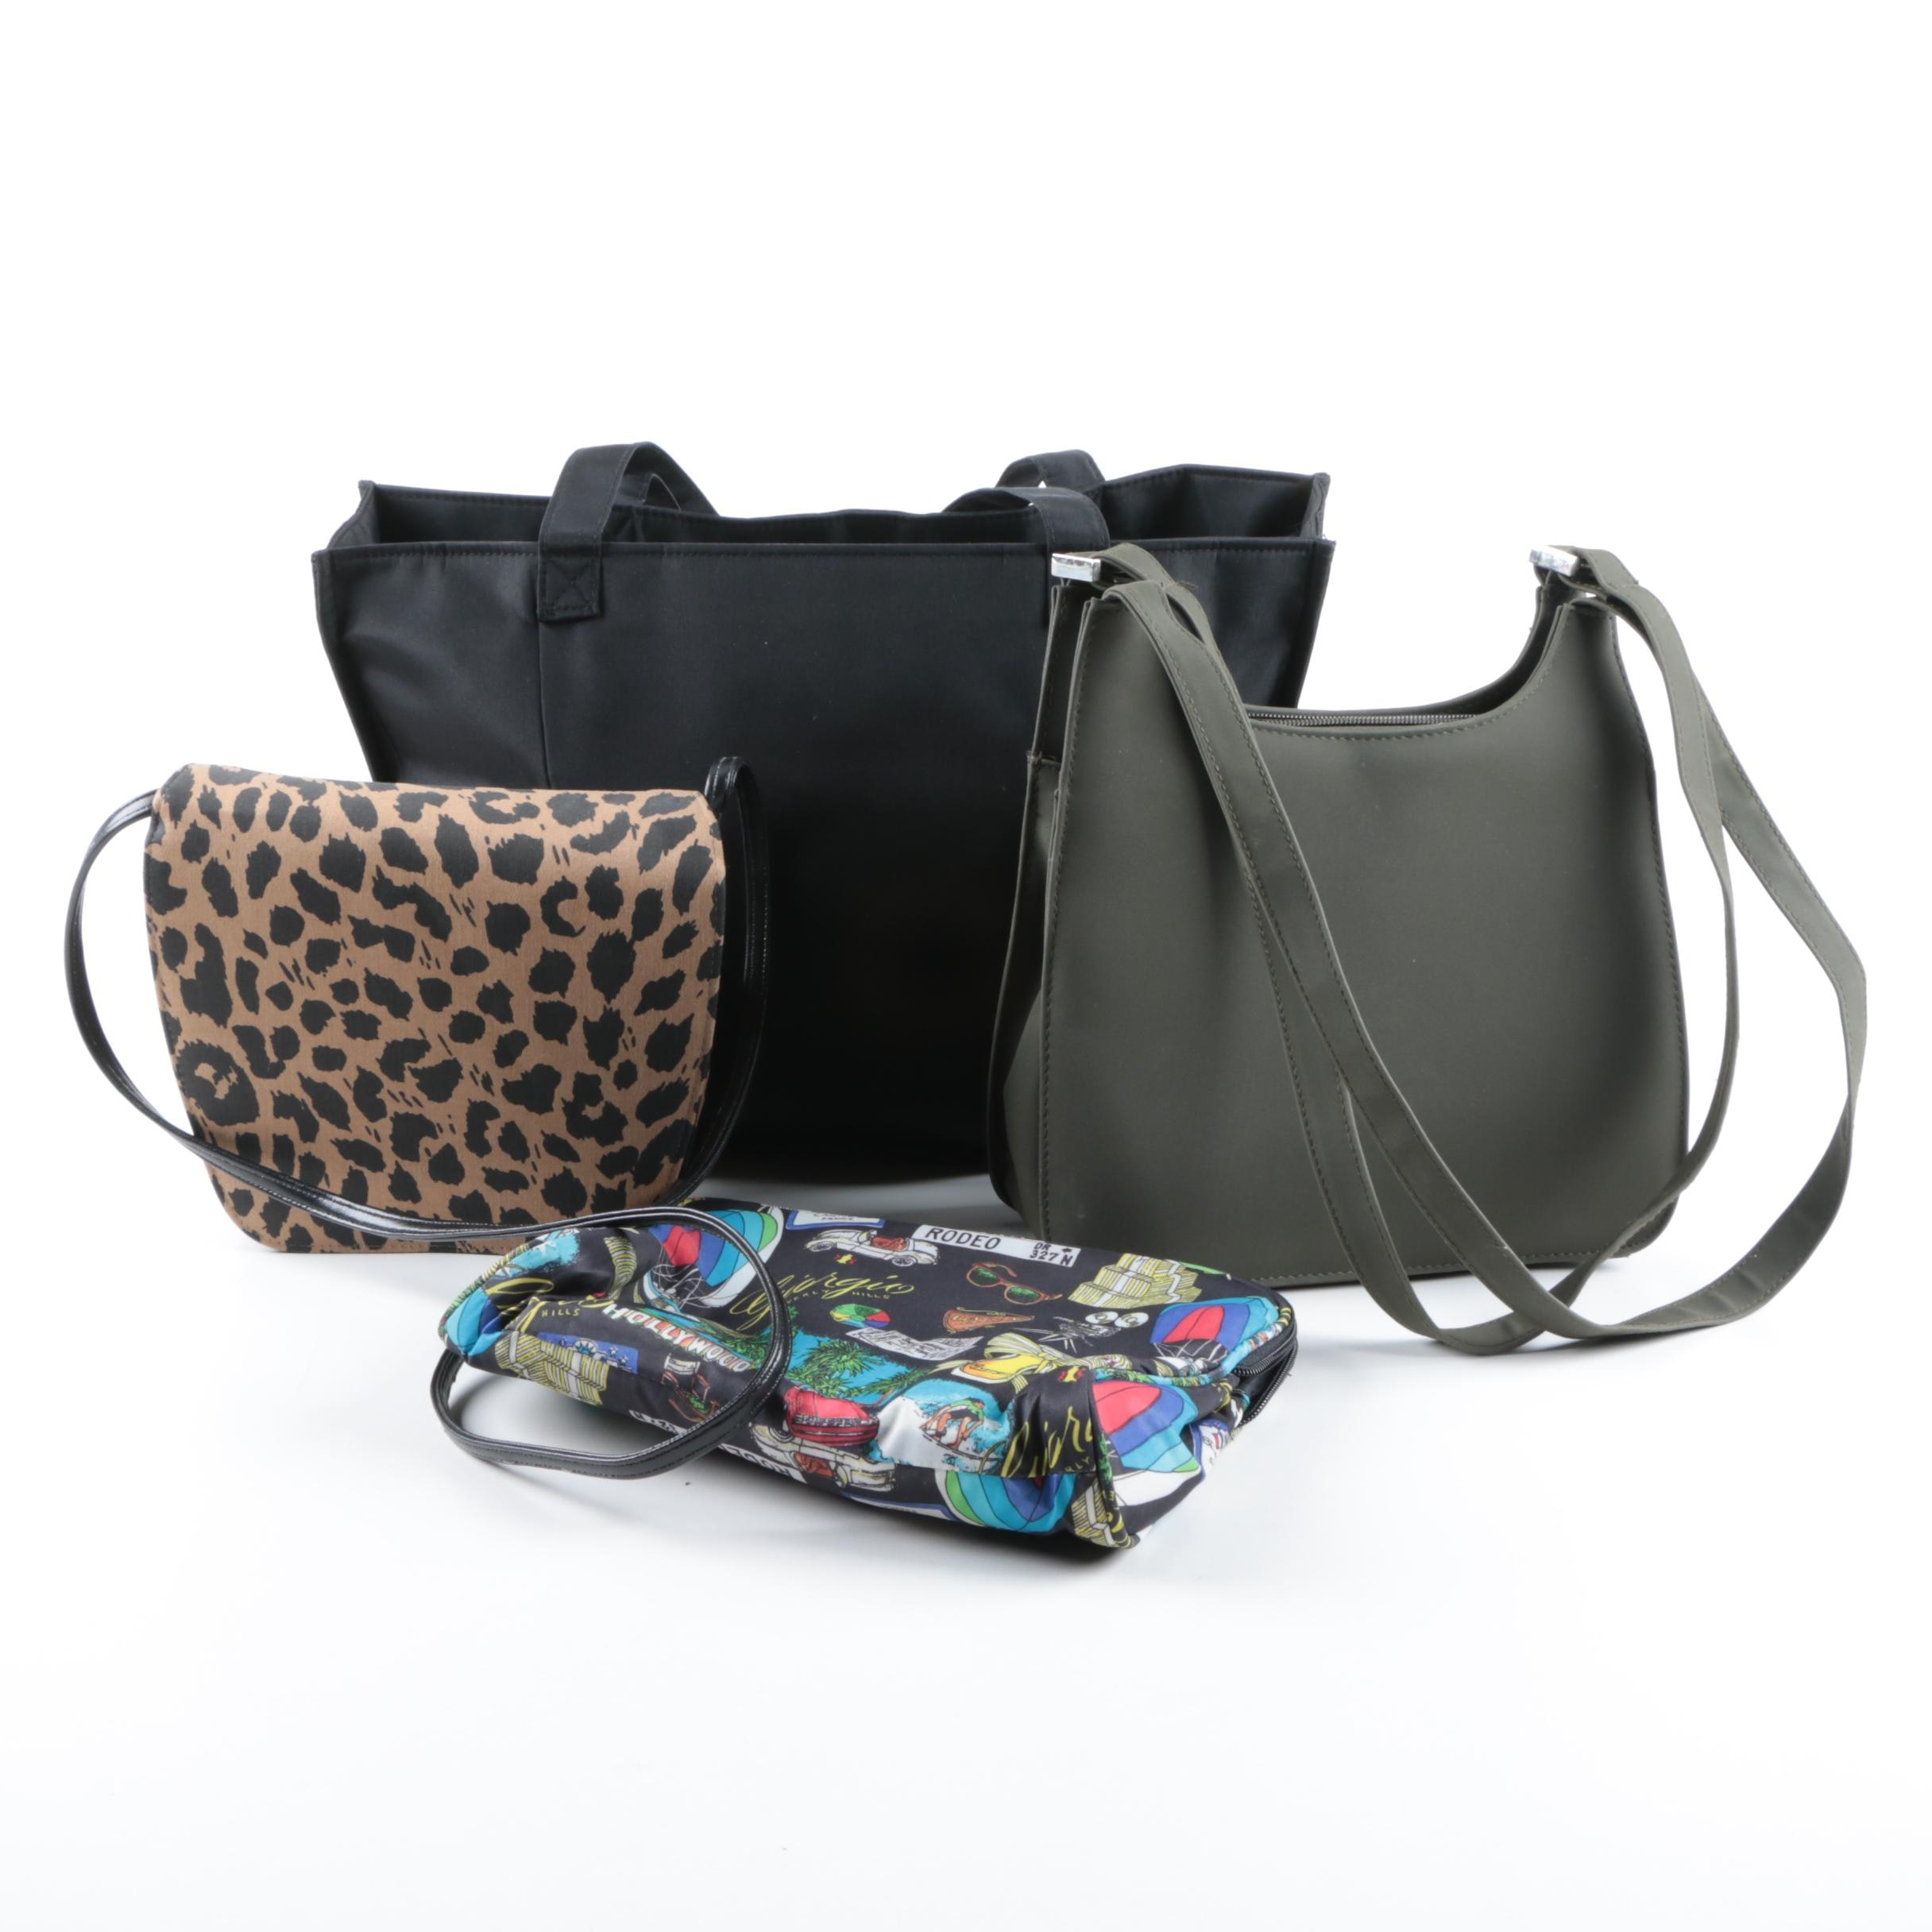 Shoulder Bags and Pouch Including Nicole Miller